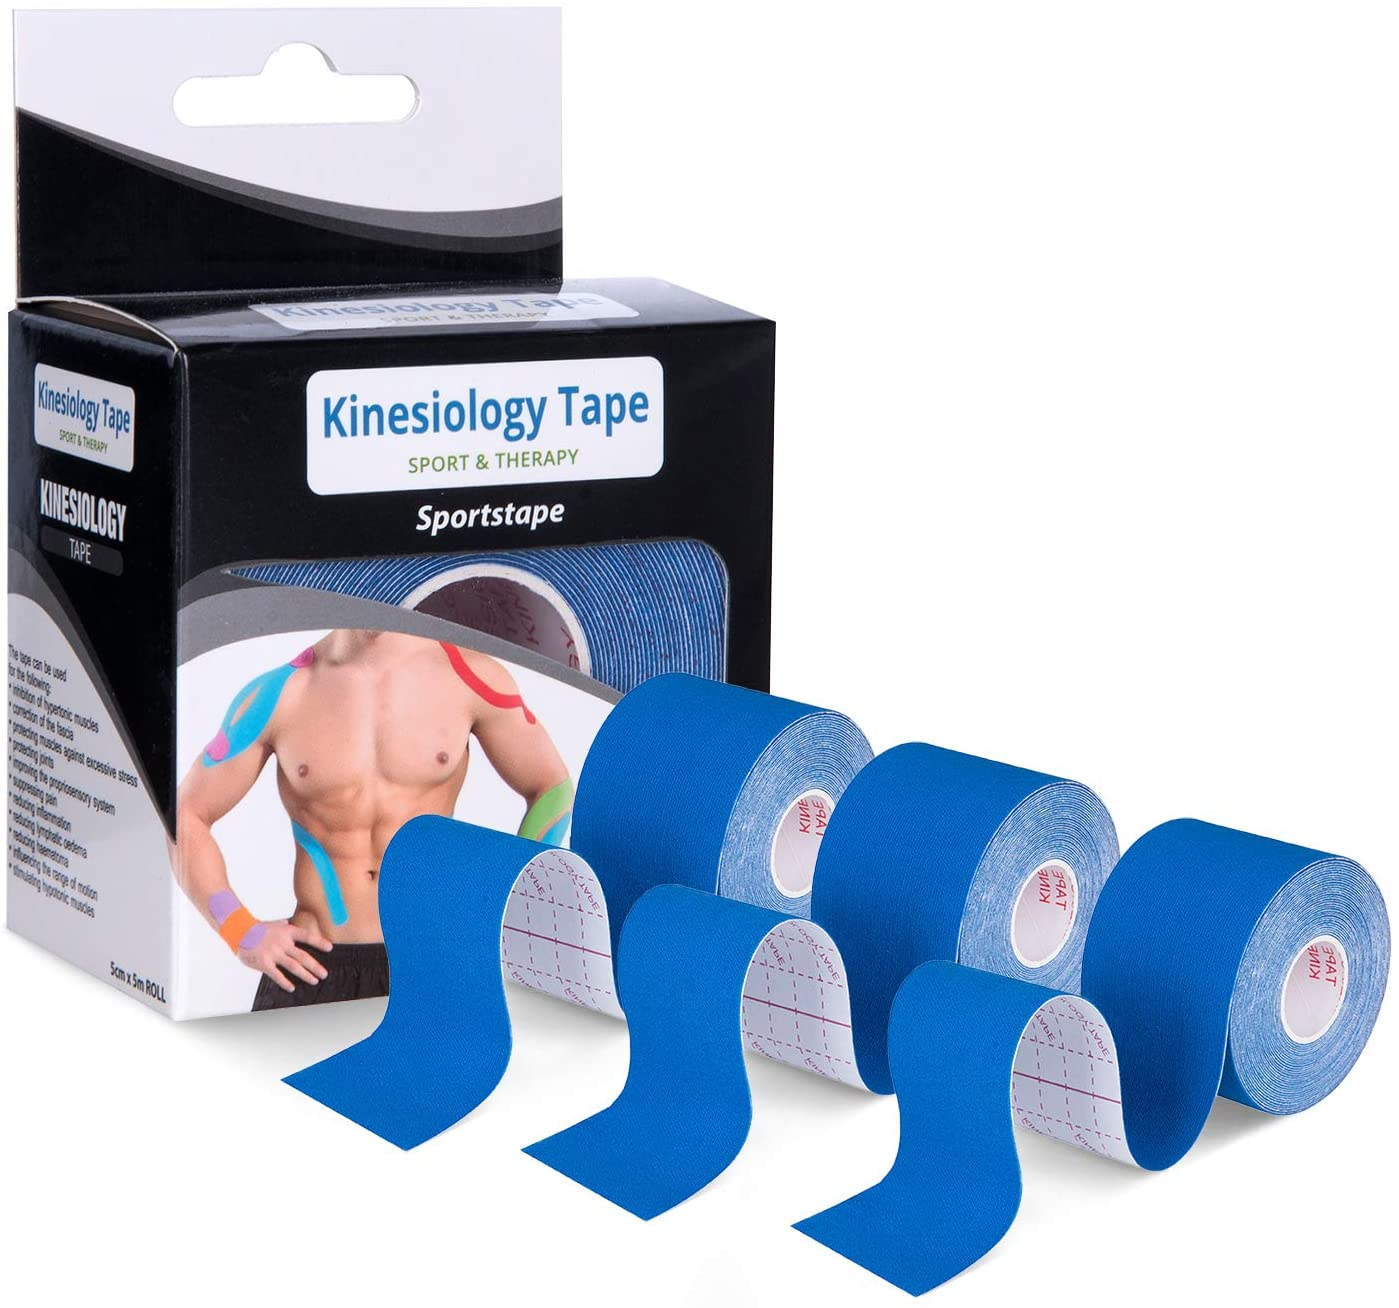 HMJWEN Kinesiology Tape 3 Pack Blue Waterproof Athletic Tape 2 inch Muscle Tape 16.4ft Uncut Roll, Latex Free, Sports Tape for Pain Relief & Support for Shoulder, Knee, Muscle, Wrist, Back